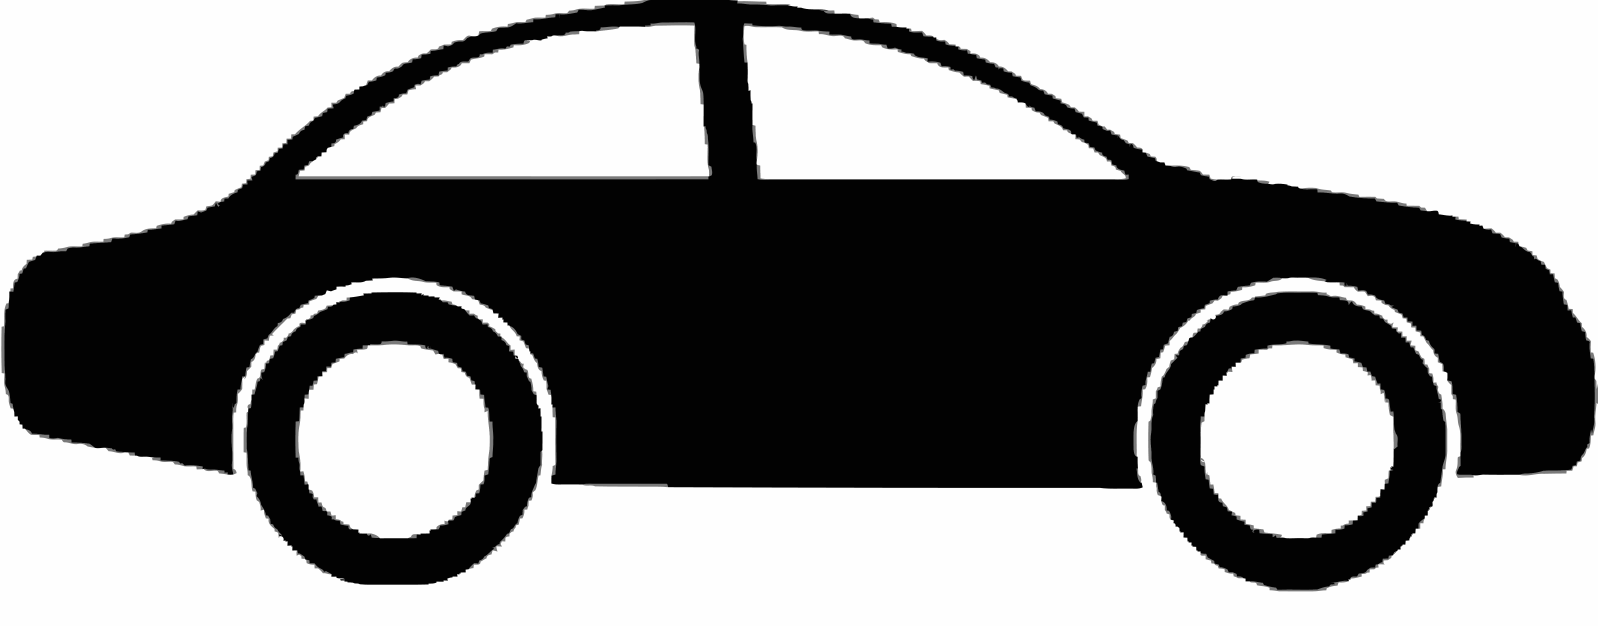 Sports Car Clipart Side View Clipart Pan-Sports Car Clipart Side View Clipart Panda Free Clipart Images-11